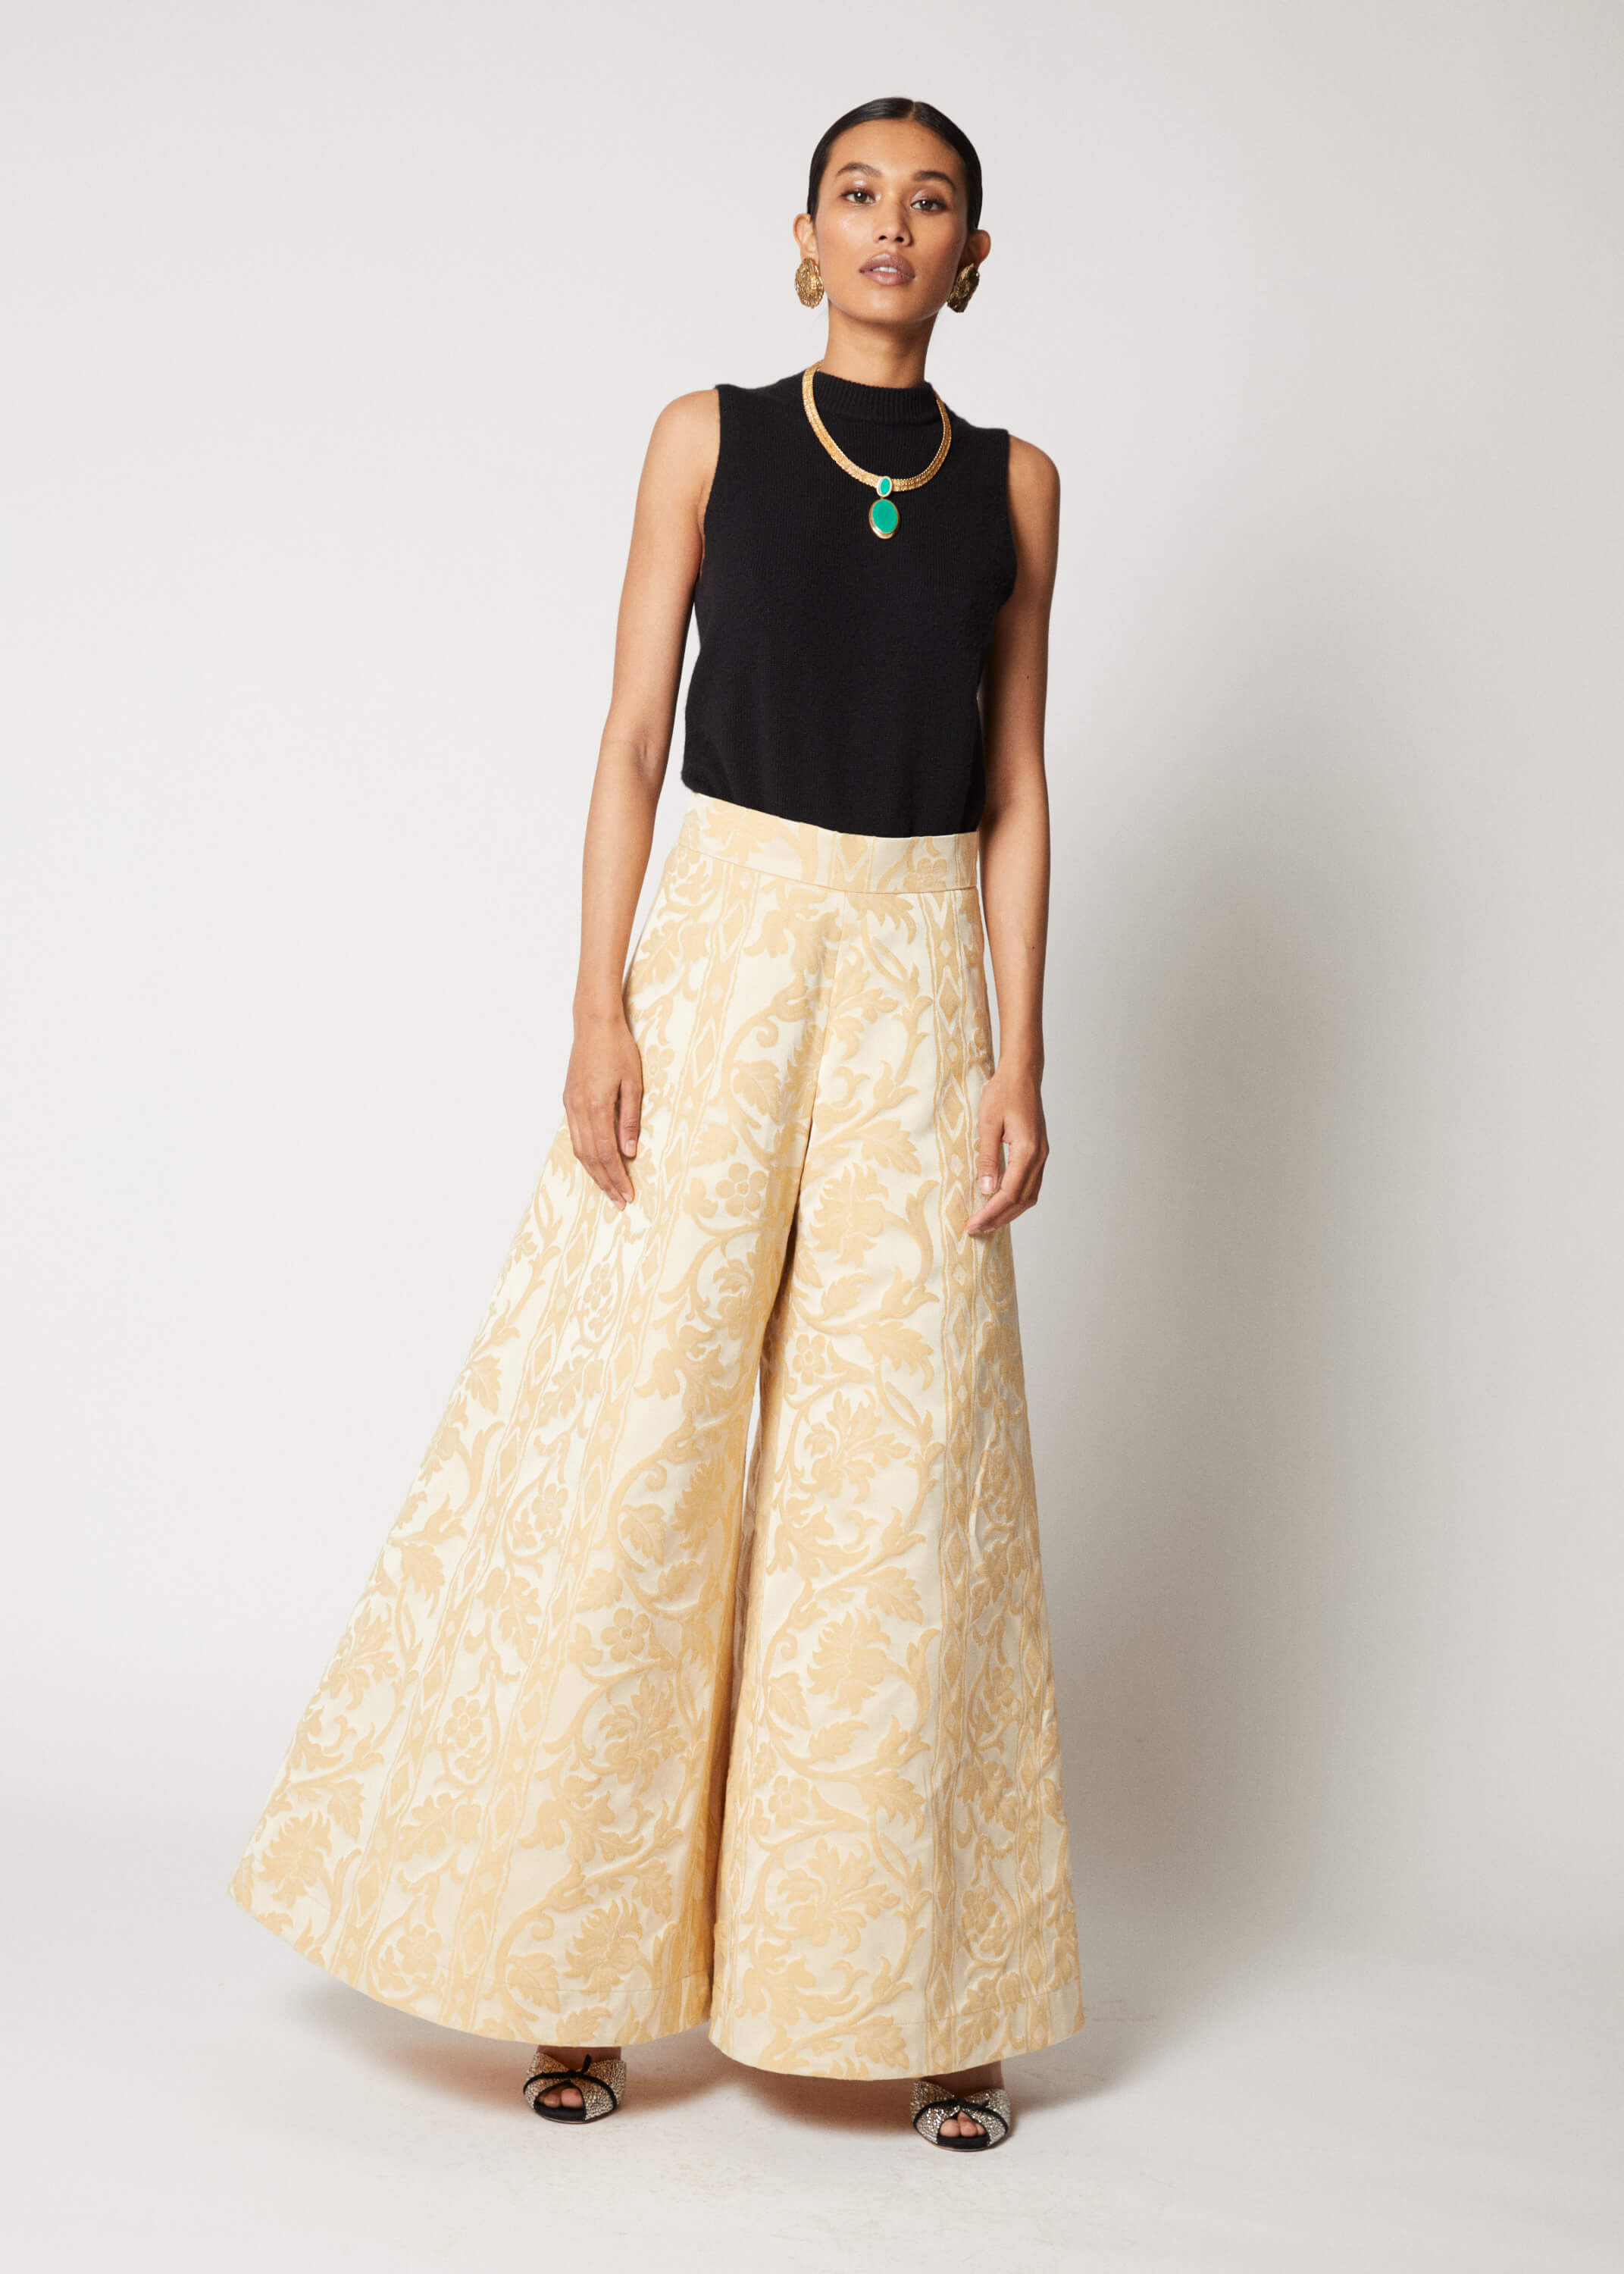 One-of-a-kind Pants Palazzo